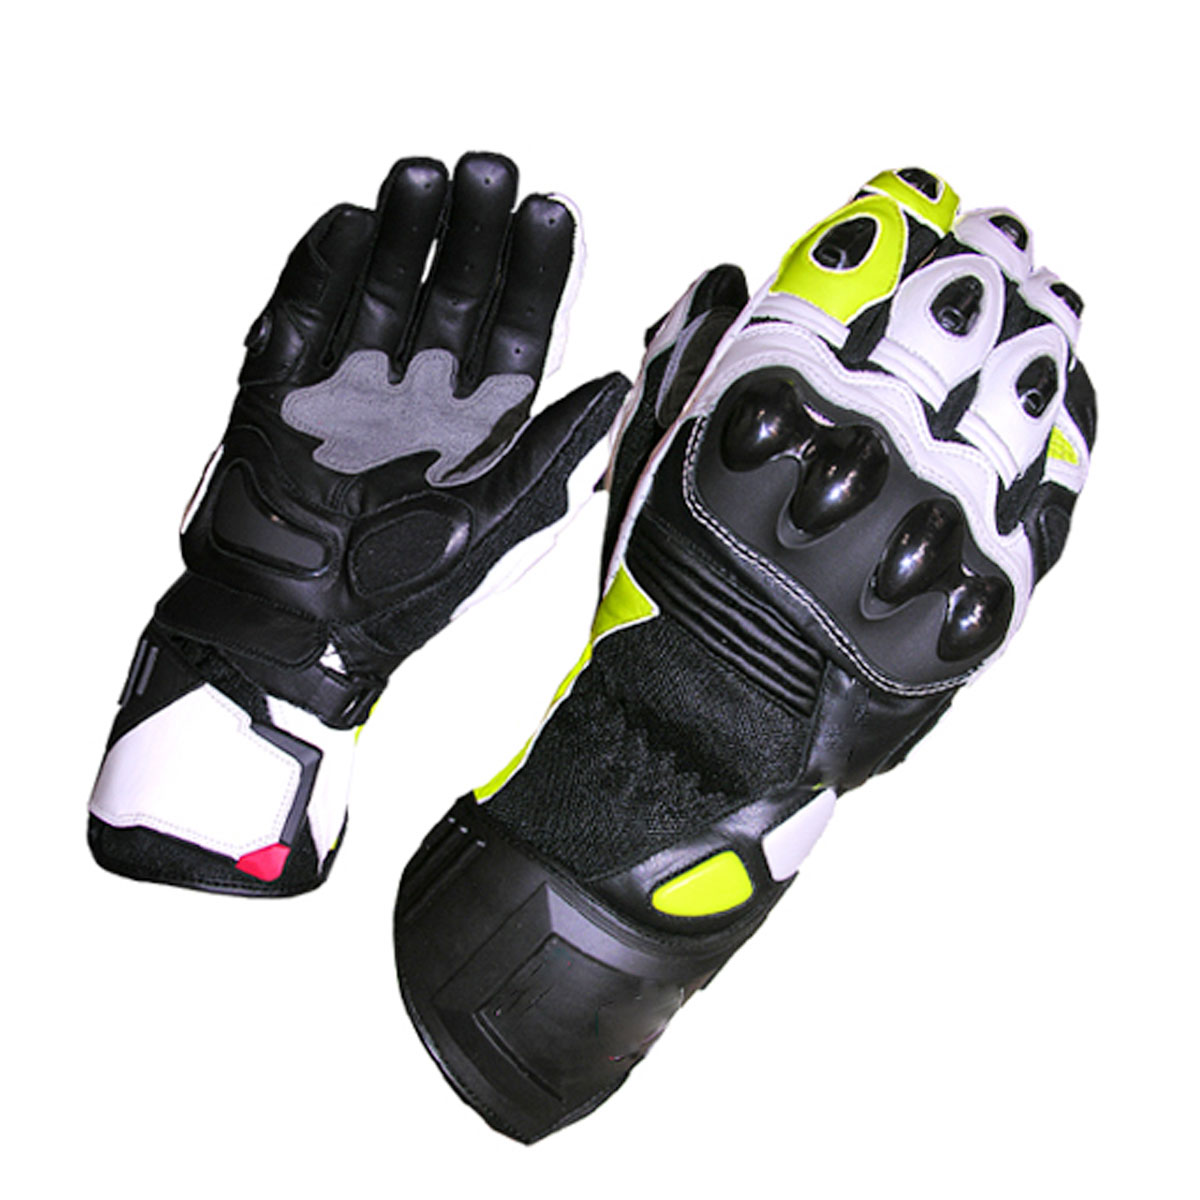 BLACK MOTORBIKE GLOVES WITH YELLOW & WHITE DESIGN